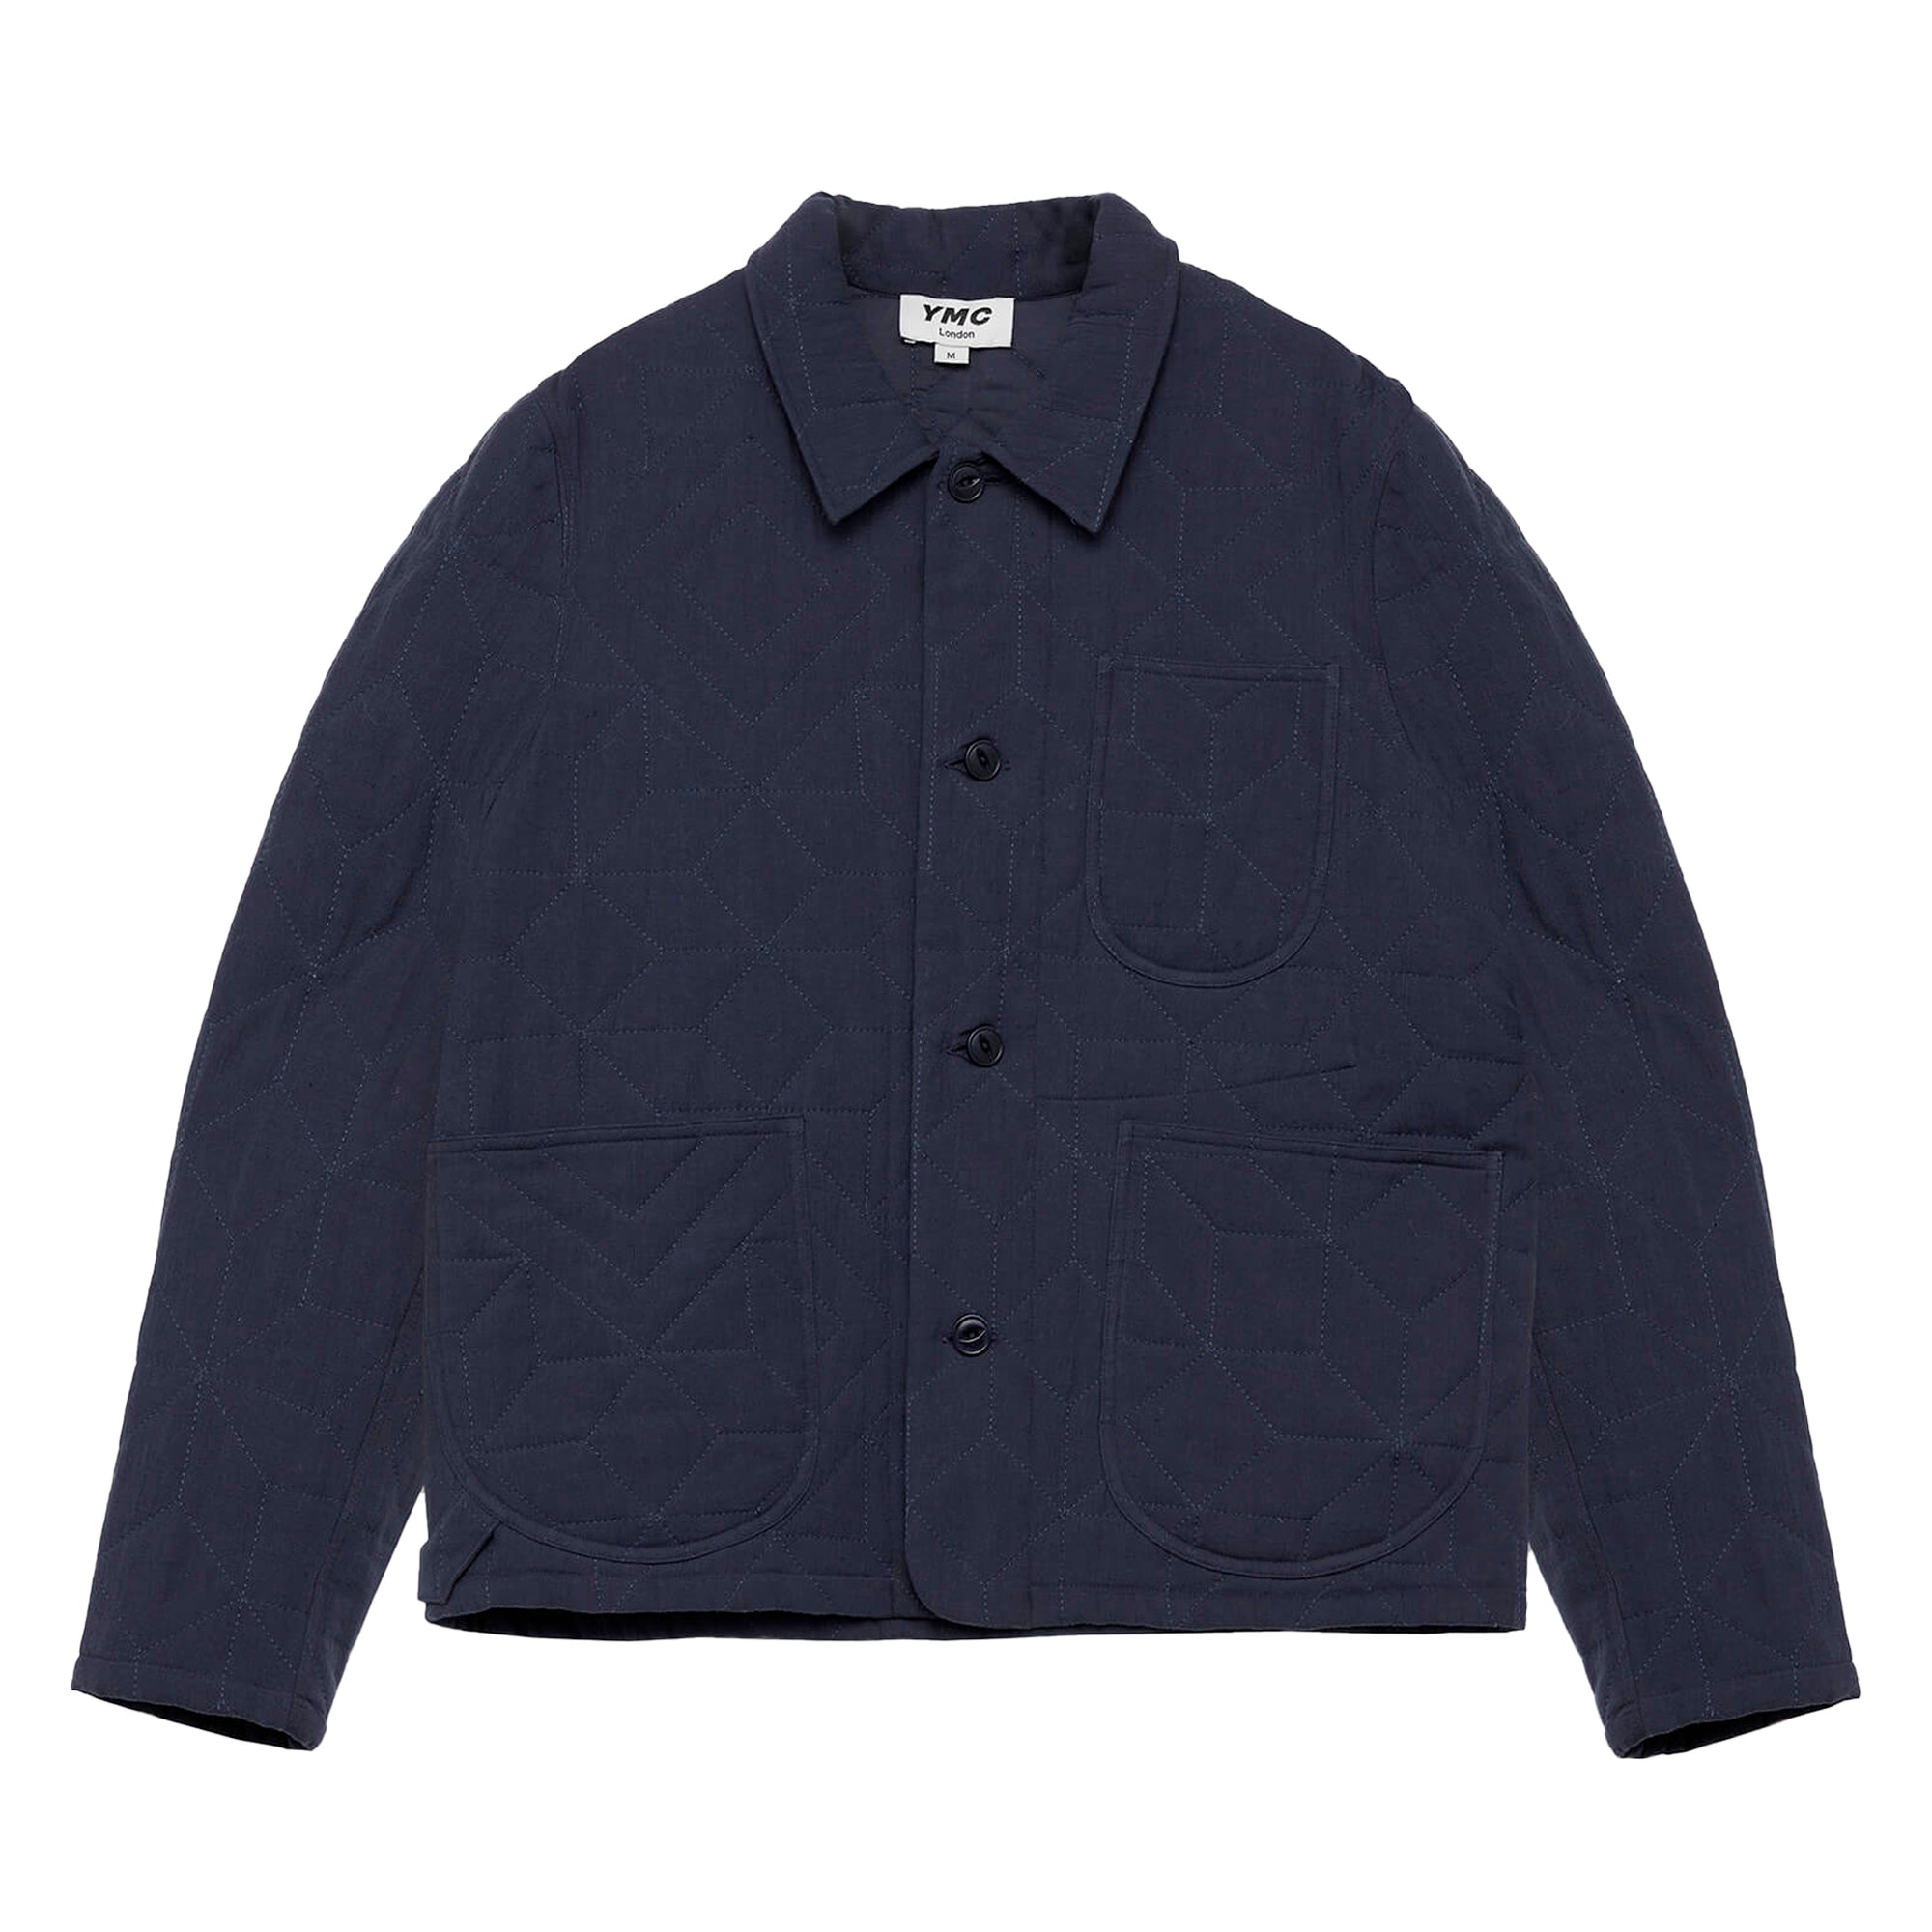 YMC Diddy Jacket: Navy - The Union Project